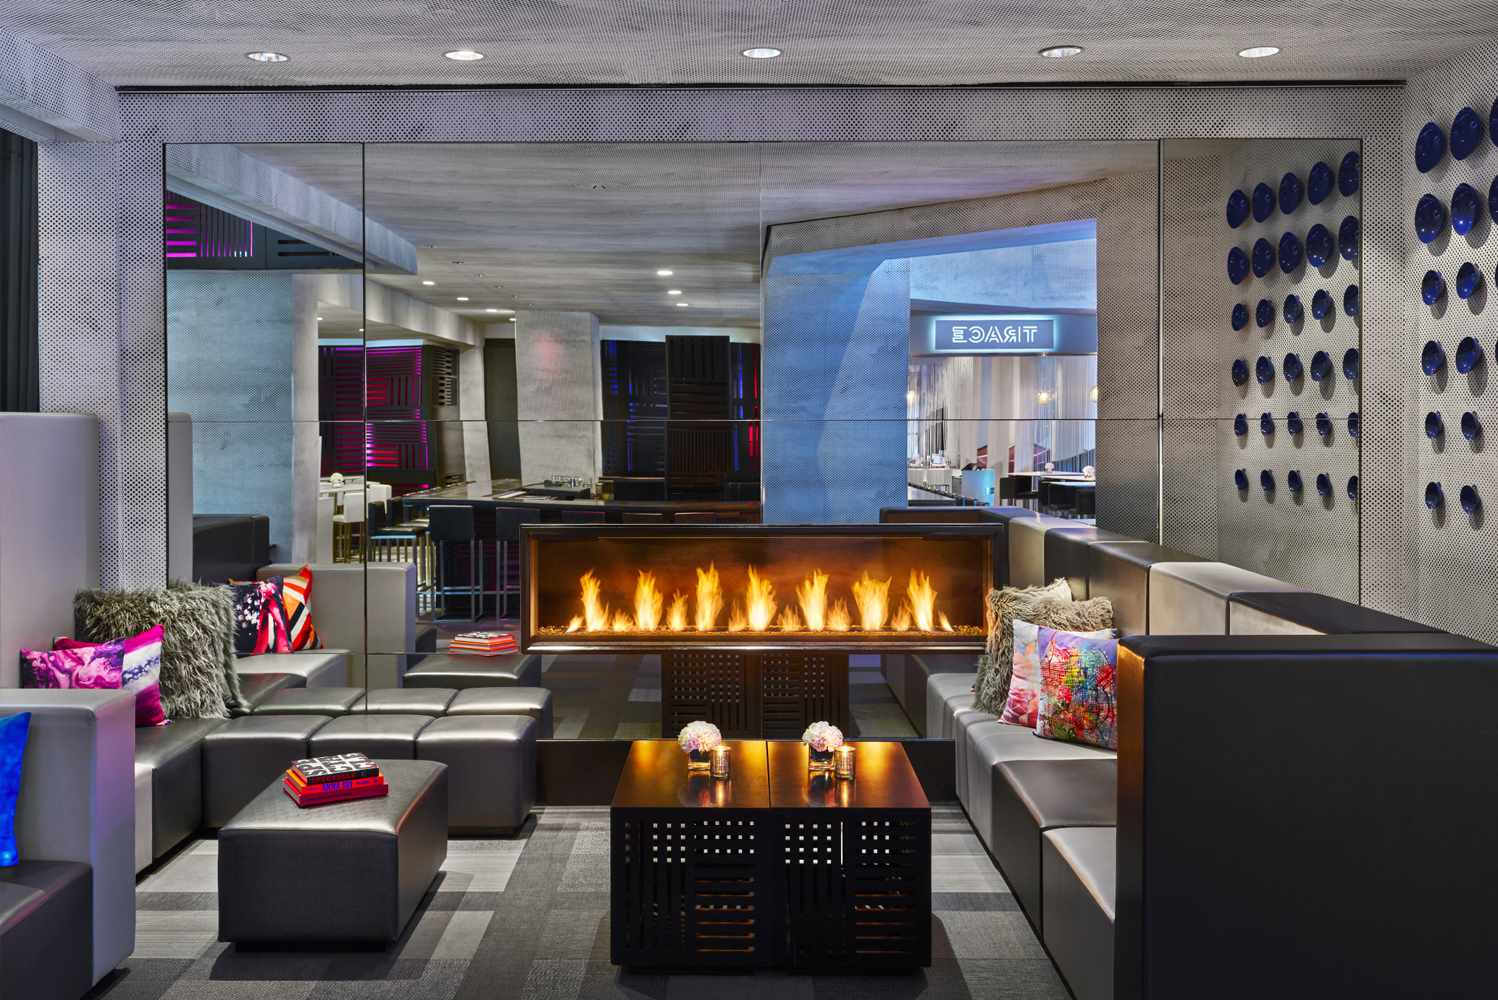 The hotel also celebrates the technological revolution that fuels the San Francisco today.